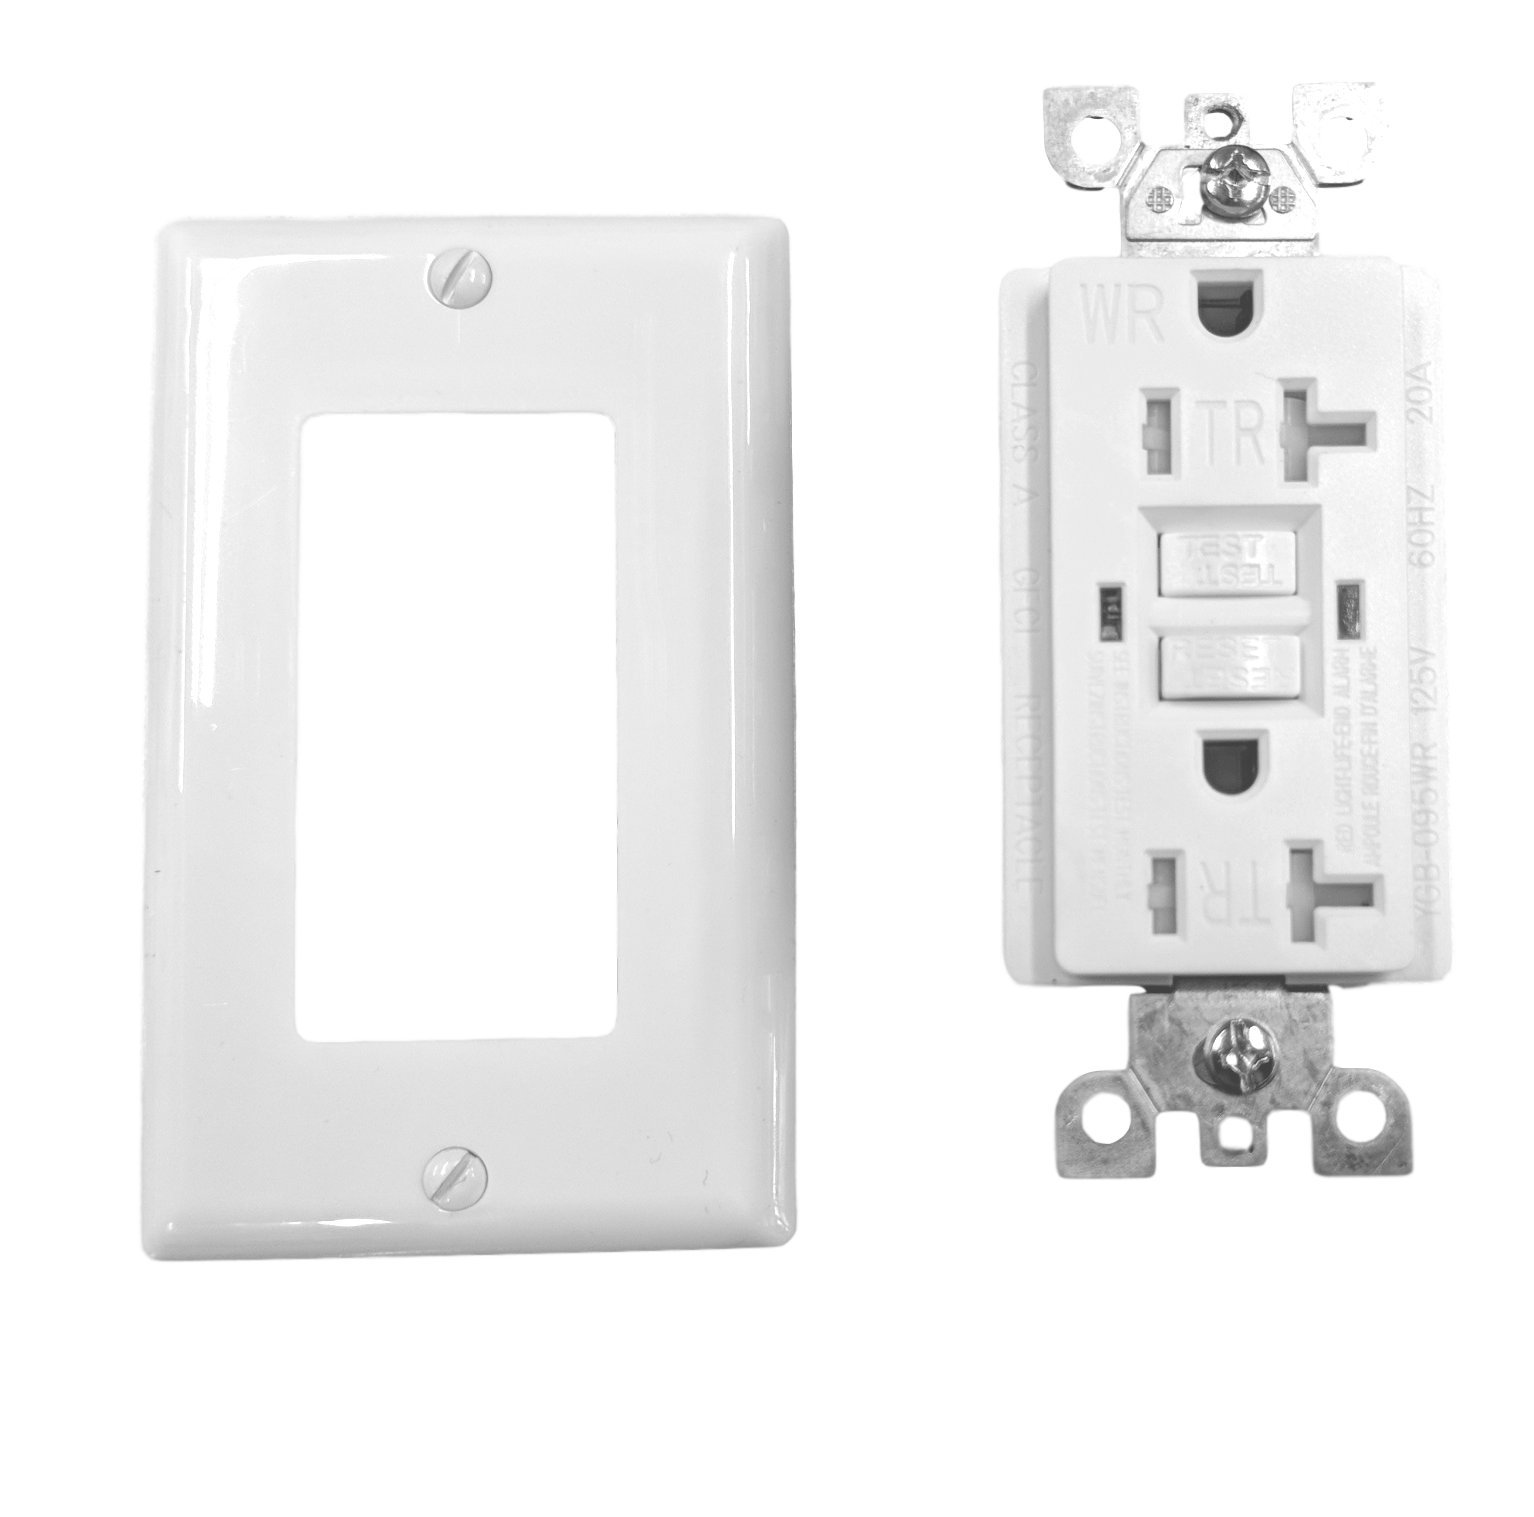 20 Amp Tamper Weather Resistant WTR GFCI LED outlet w/Wallplate UL2015 (Pack of 10)